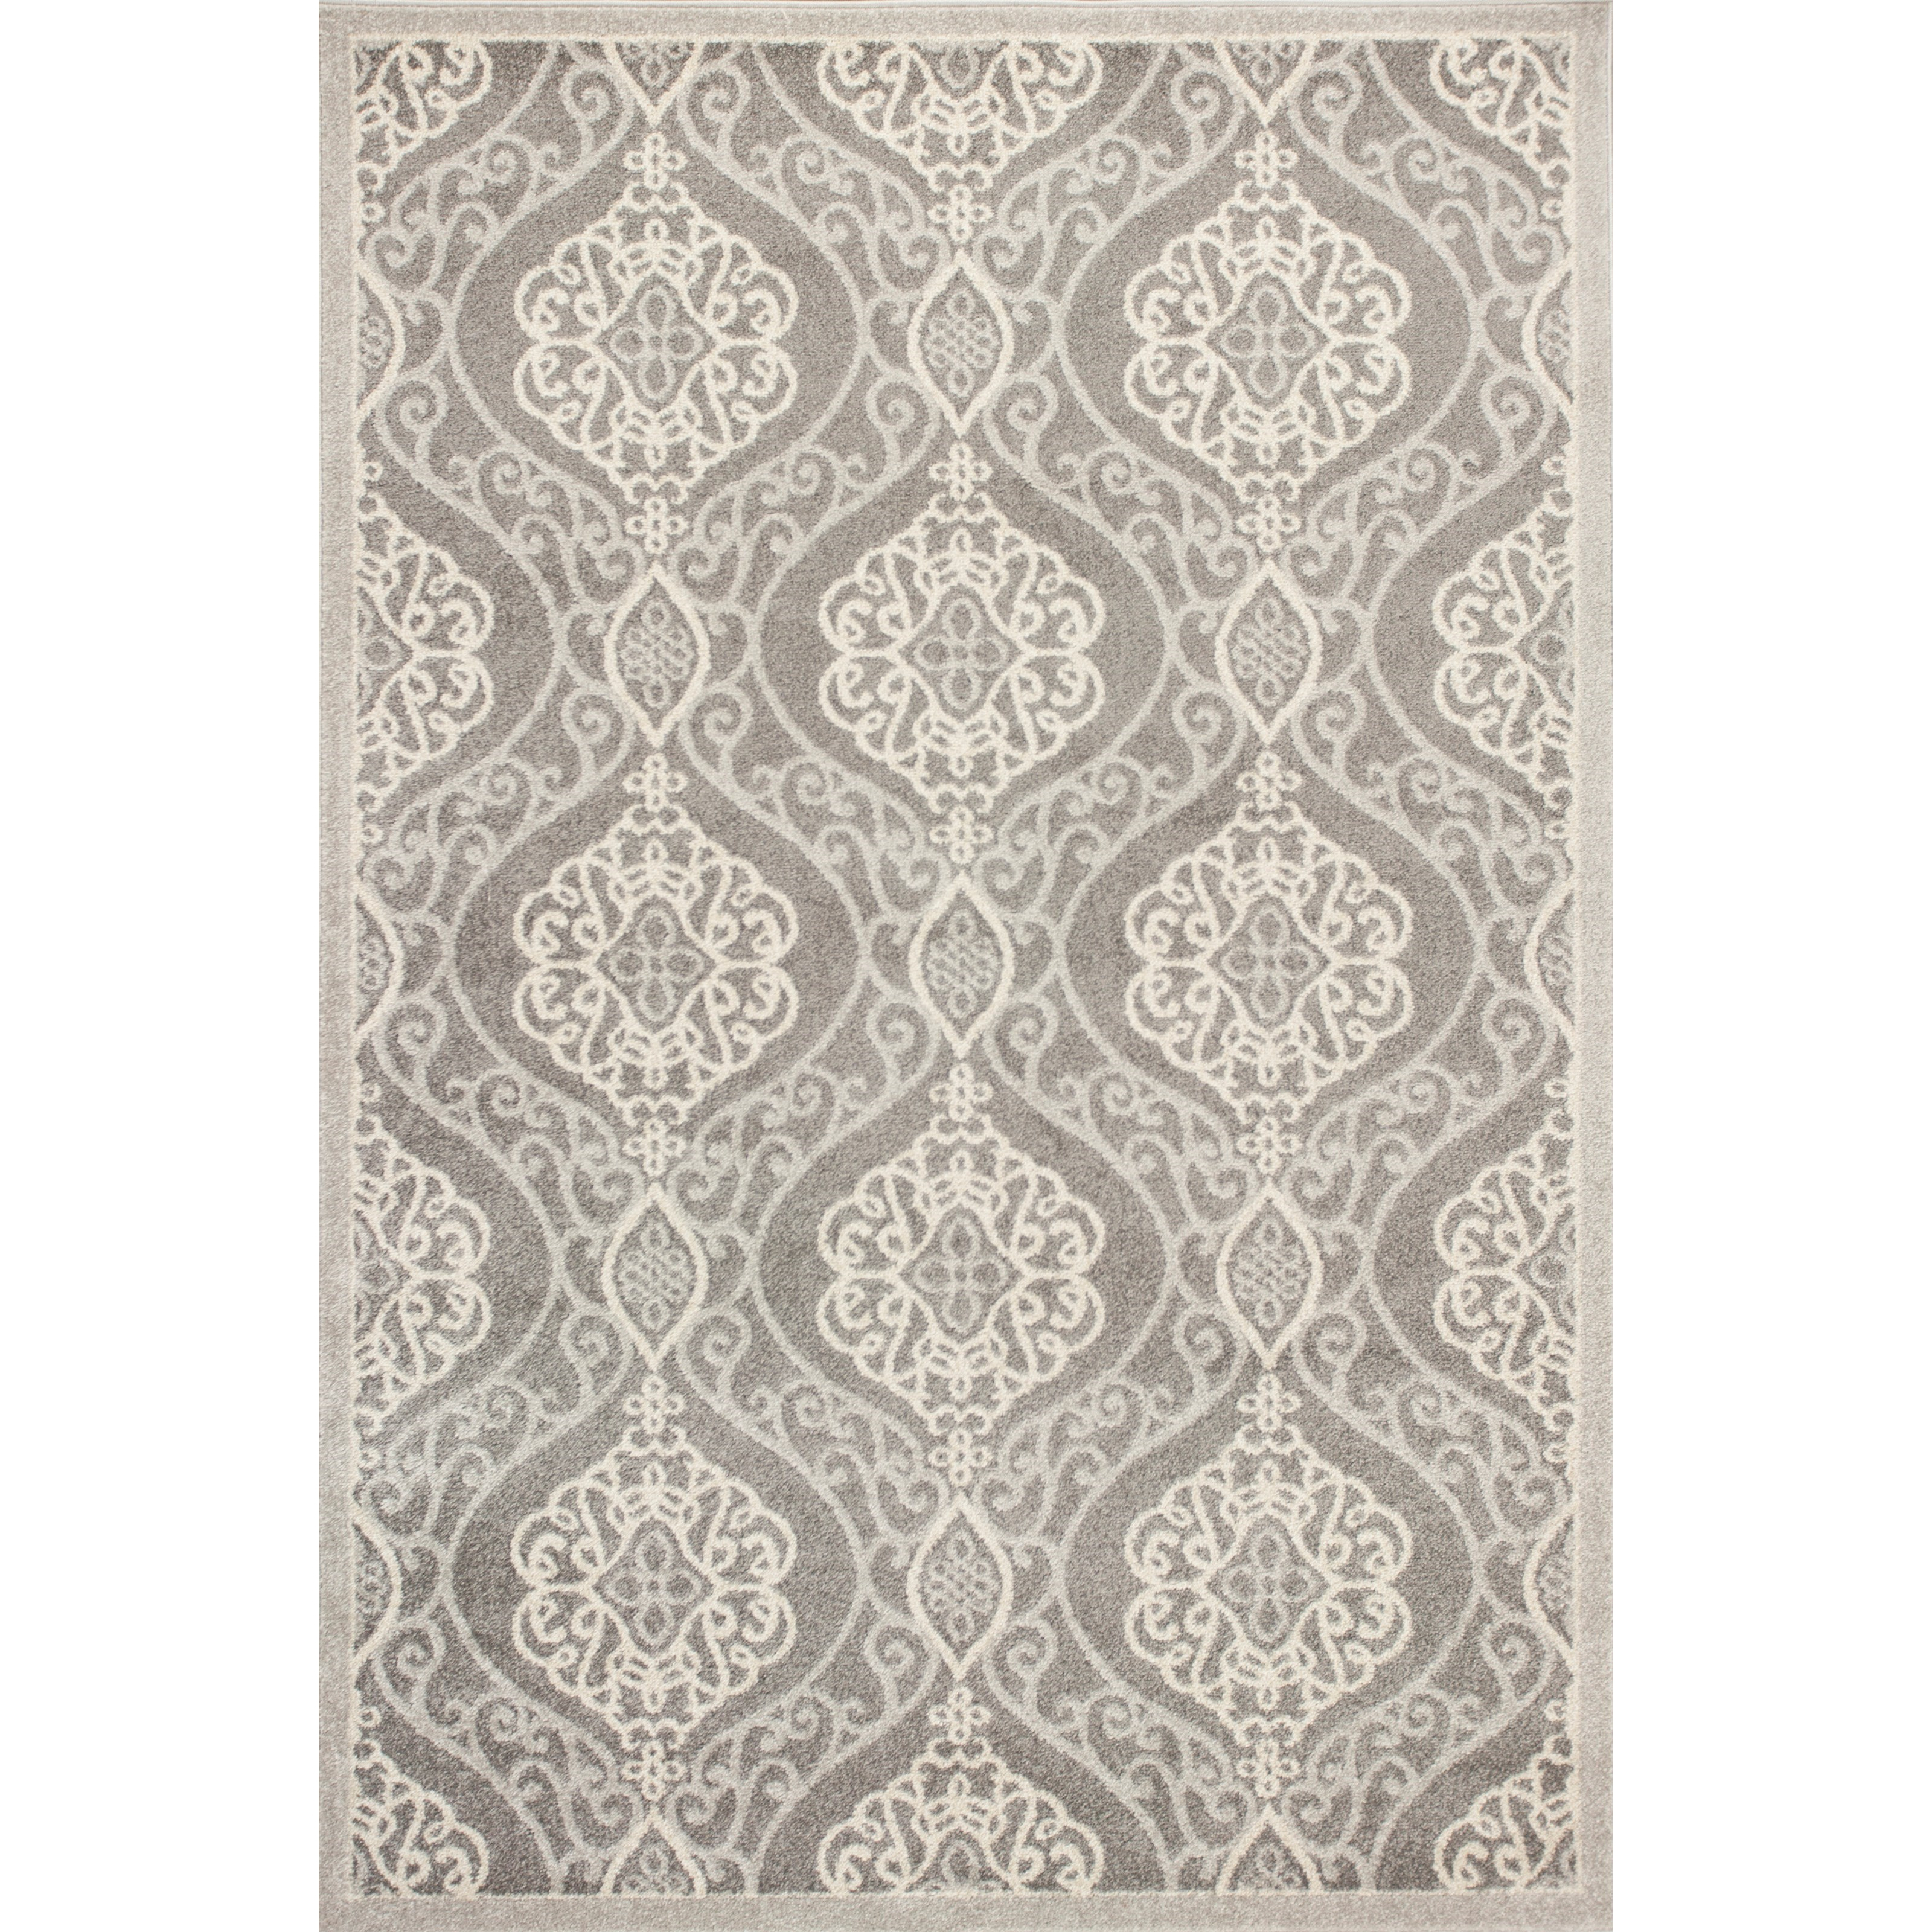 "Lucia 5'3"" X 7'7"" Silver Mosaic Area Rug by Kas at Wilson's Furniture"